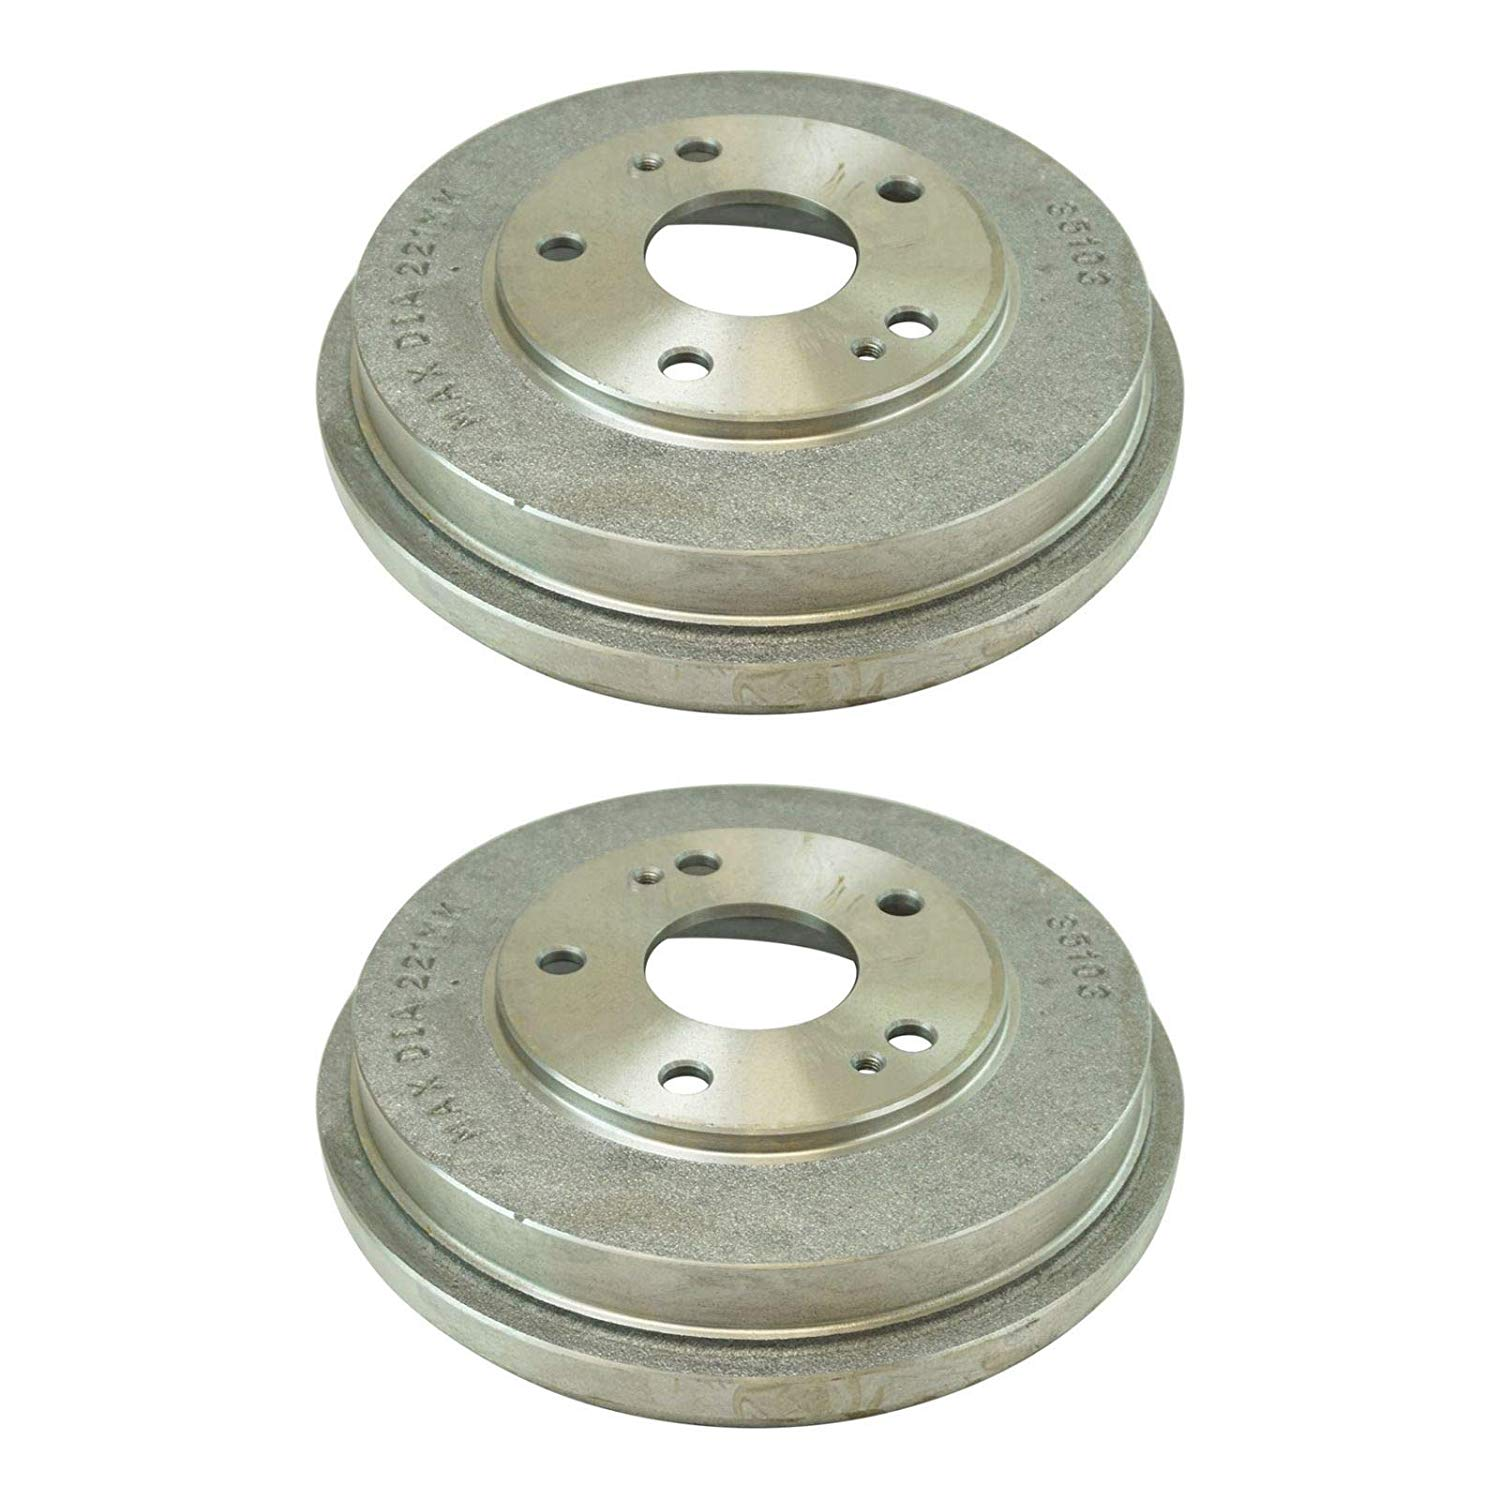 Pair (2) Rear Brake Drums for 2003-2007 Honda Accord